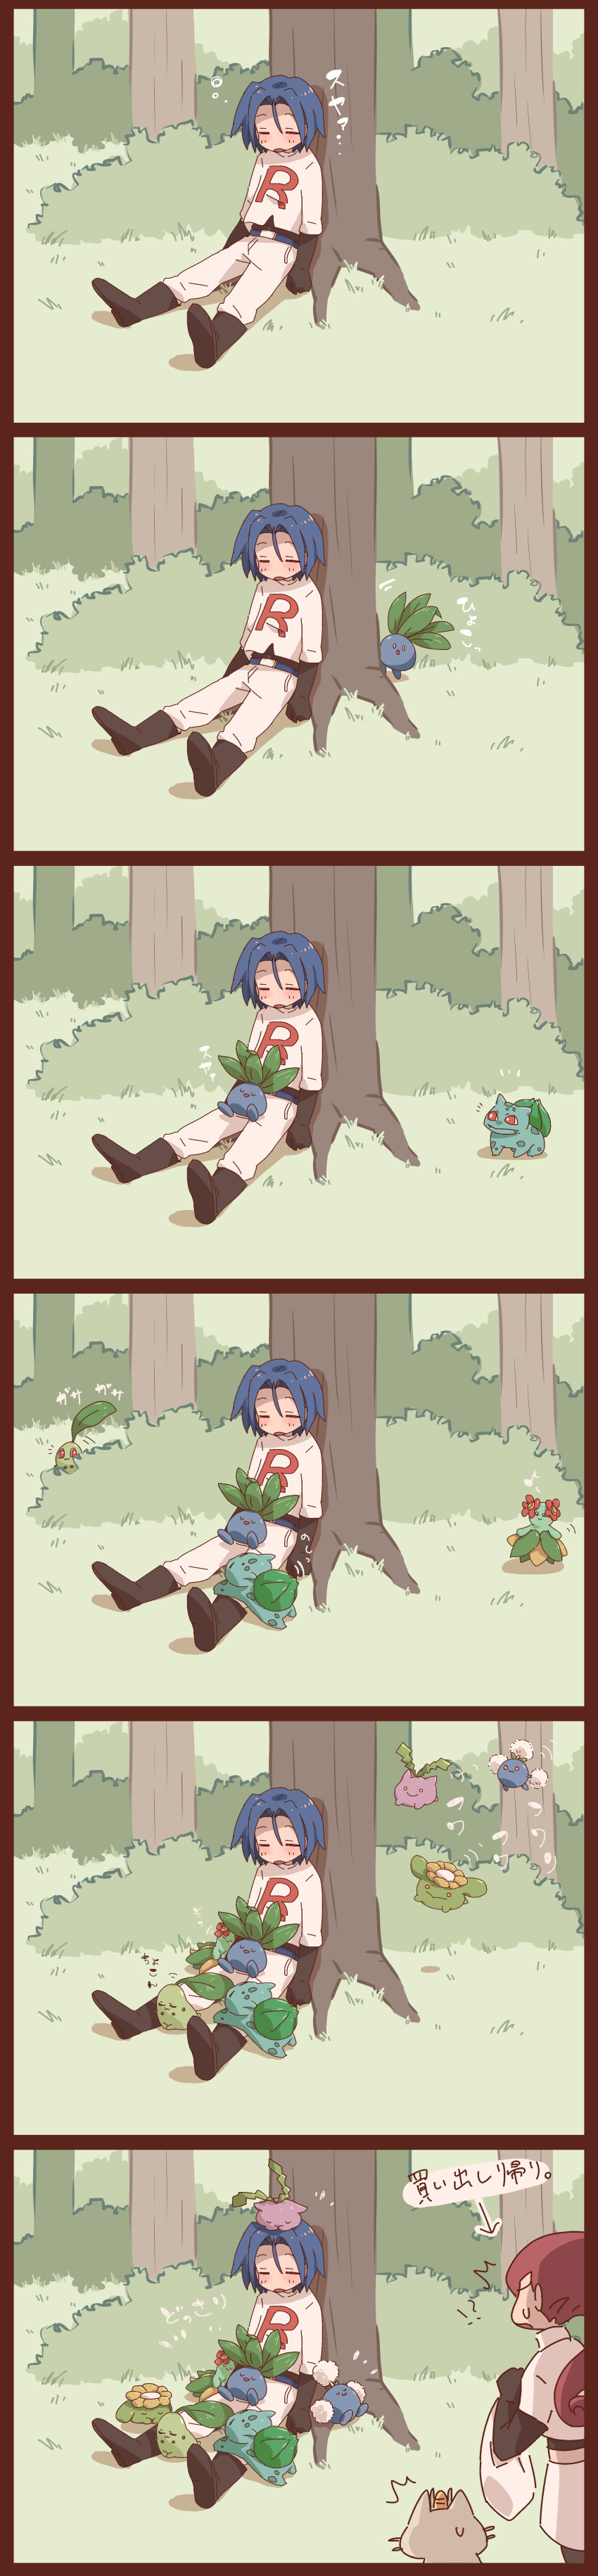 absurdres bellossom bulbasaur chikorita grass highres incredibly_absurdres jumpluff kojirou_(pokemon) long_image meowth musashi_(pokemon) oddish pokemon pokemon_(creature) pokemon_on_head pokemon_on_lap pokemon_on_leg sleeping tall_image team_rocket tree